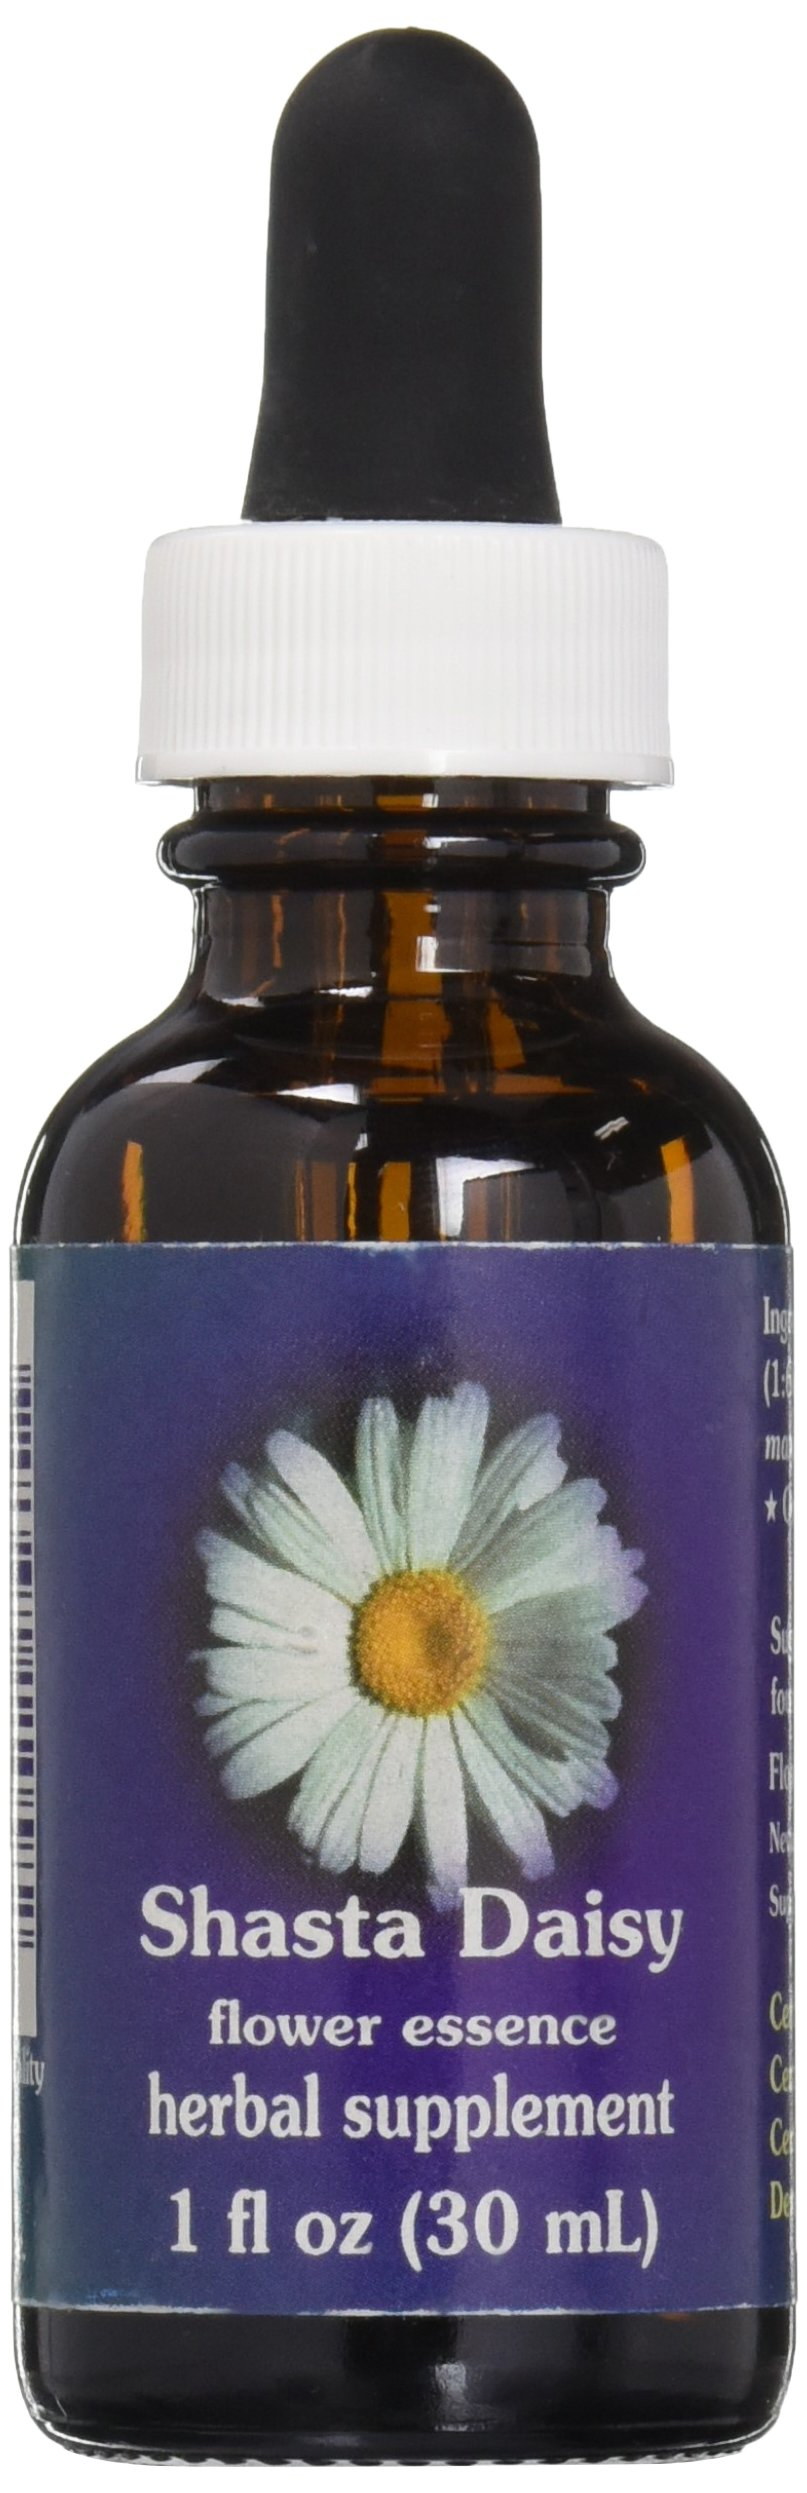 Flower Essence Services Dropper Herbal Supplements, Shasta Daisy, 1 Ounce